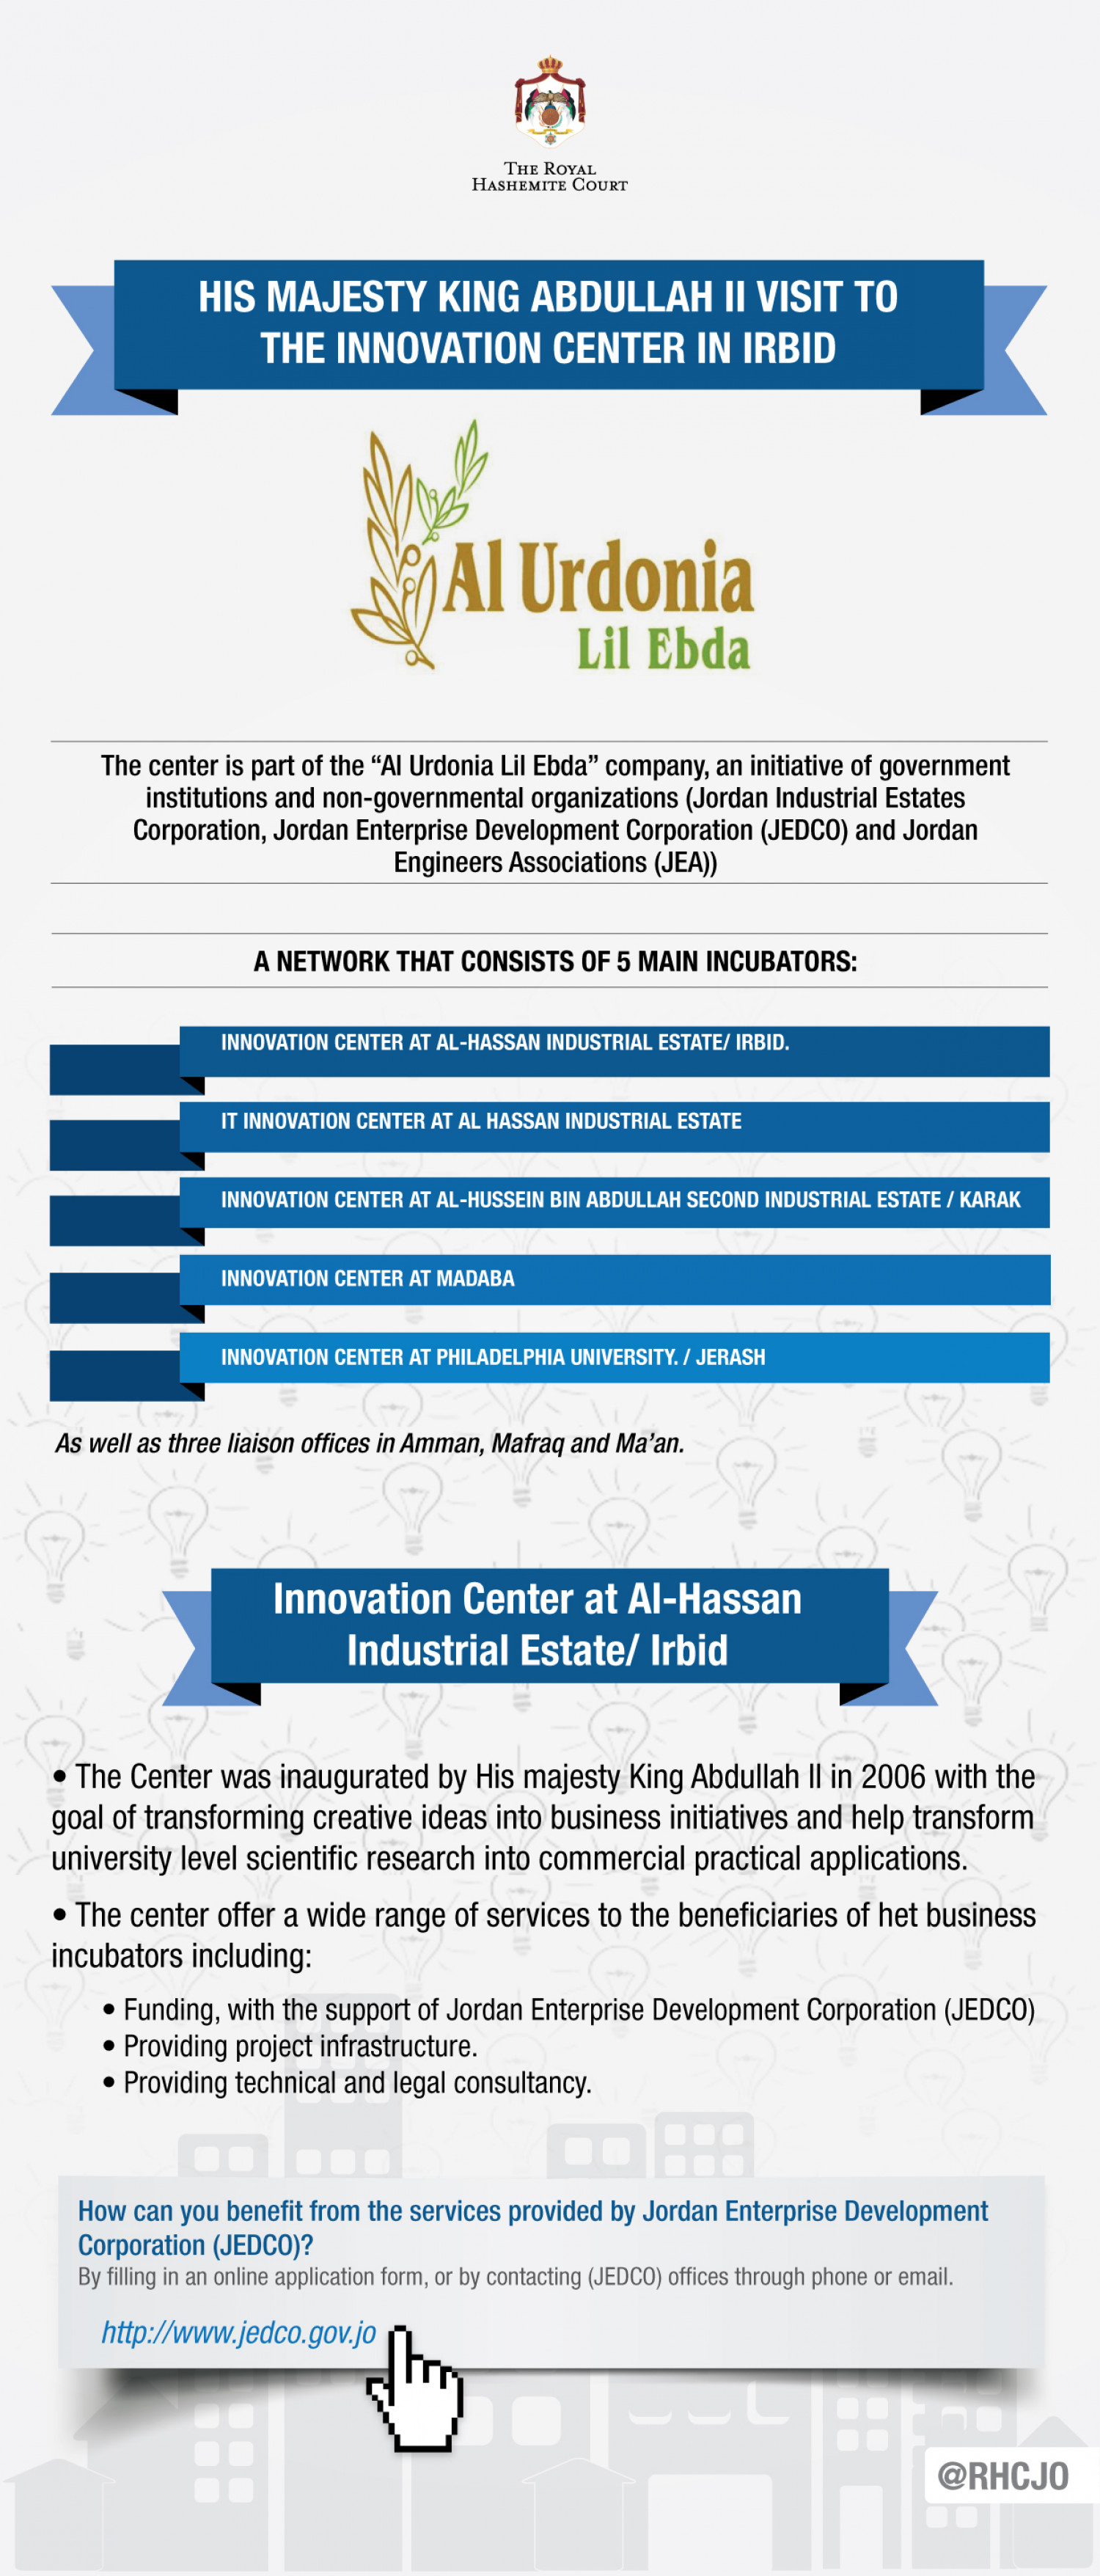 His Majesty King Abdullah II Visit to the Innovation Center in Irbid Infographic